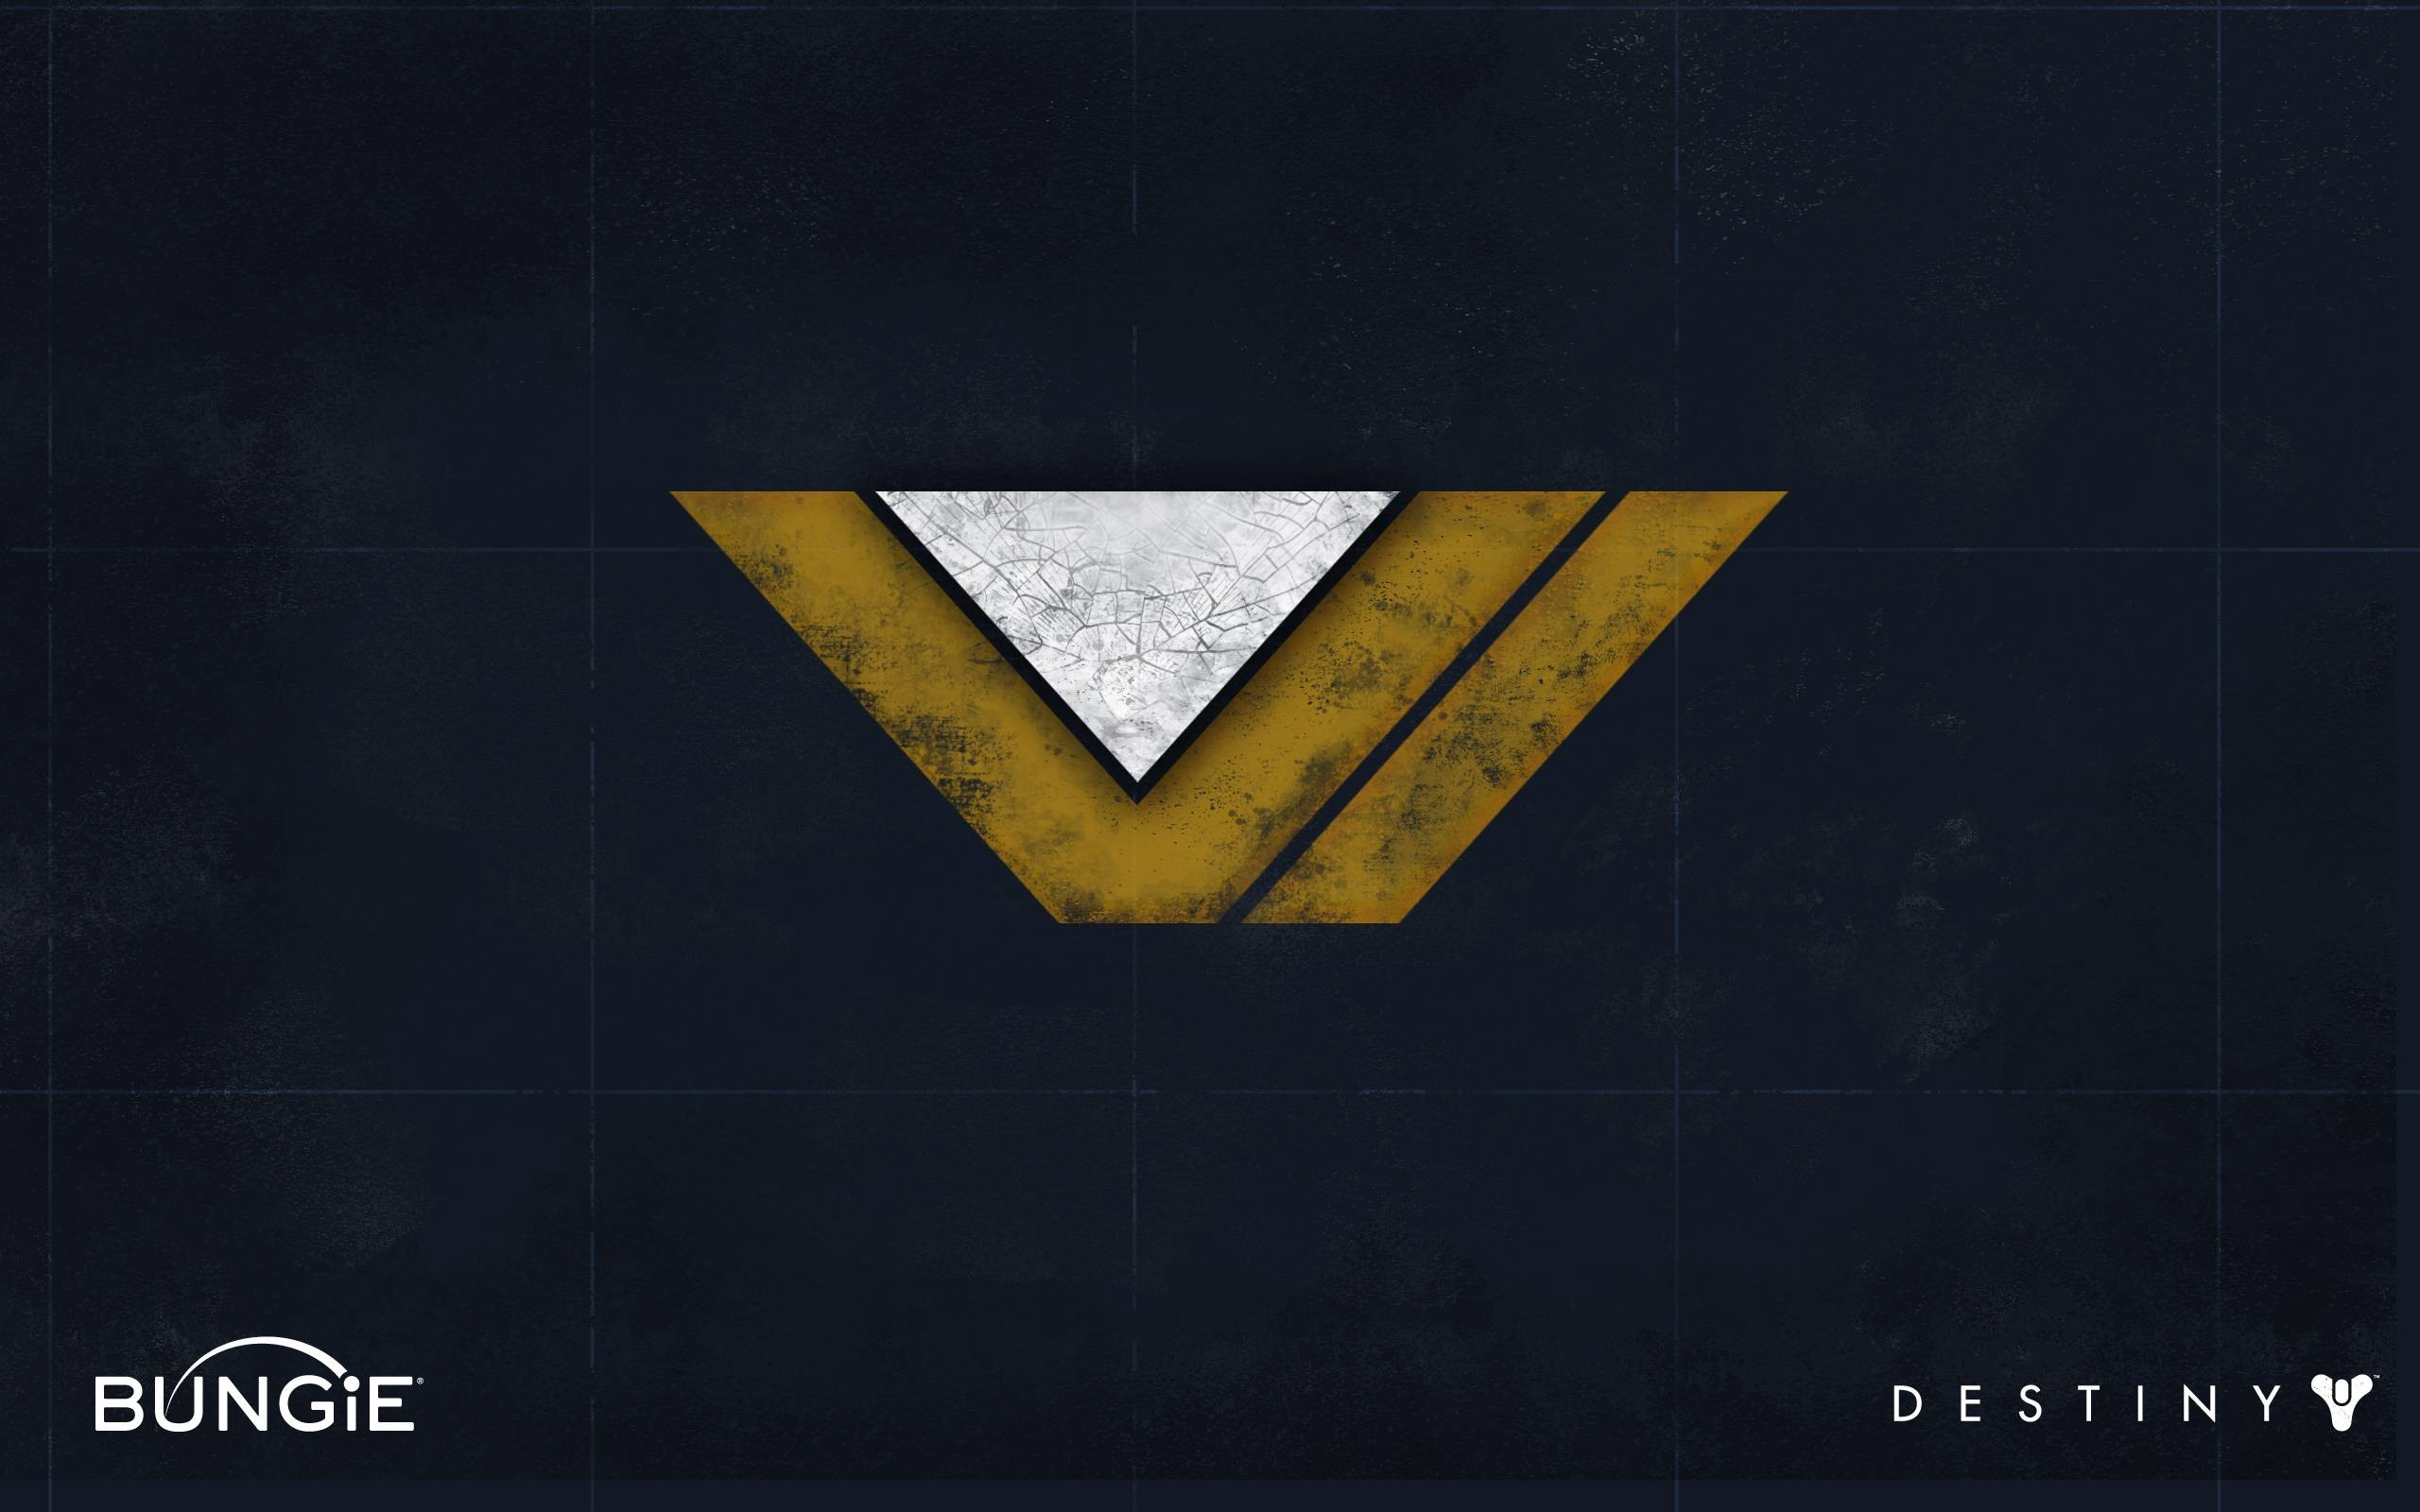 70 Awesome Destiny Wallpapers for your Computer, Tablet, or Phone